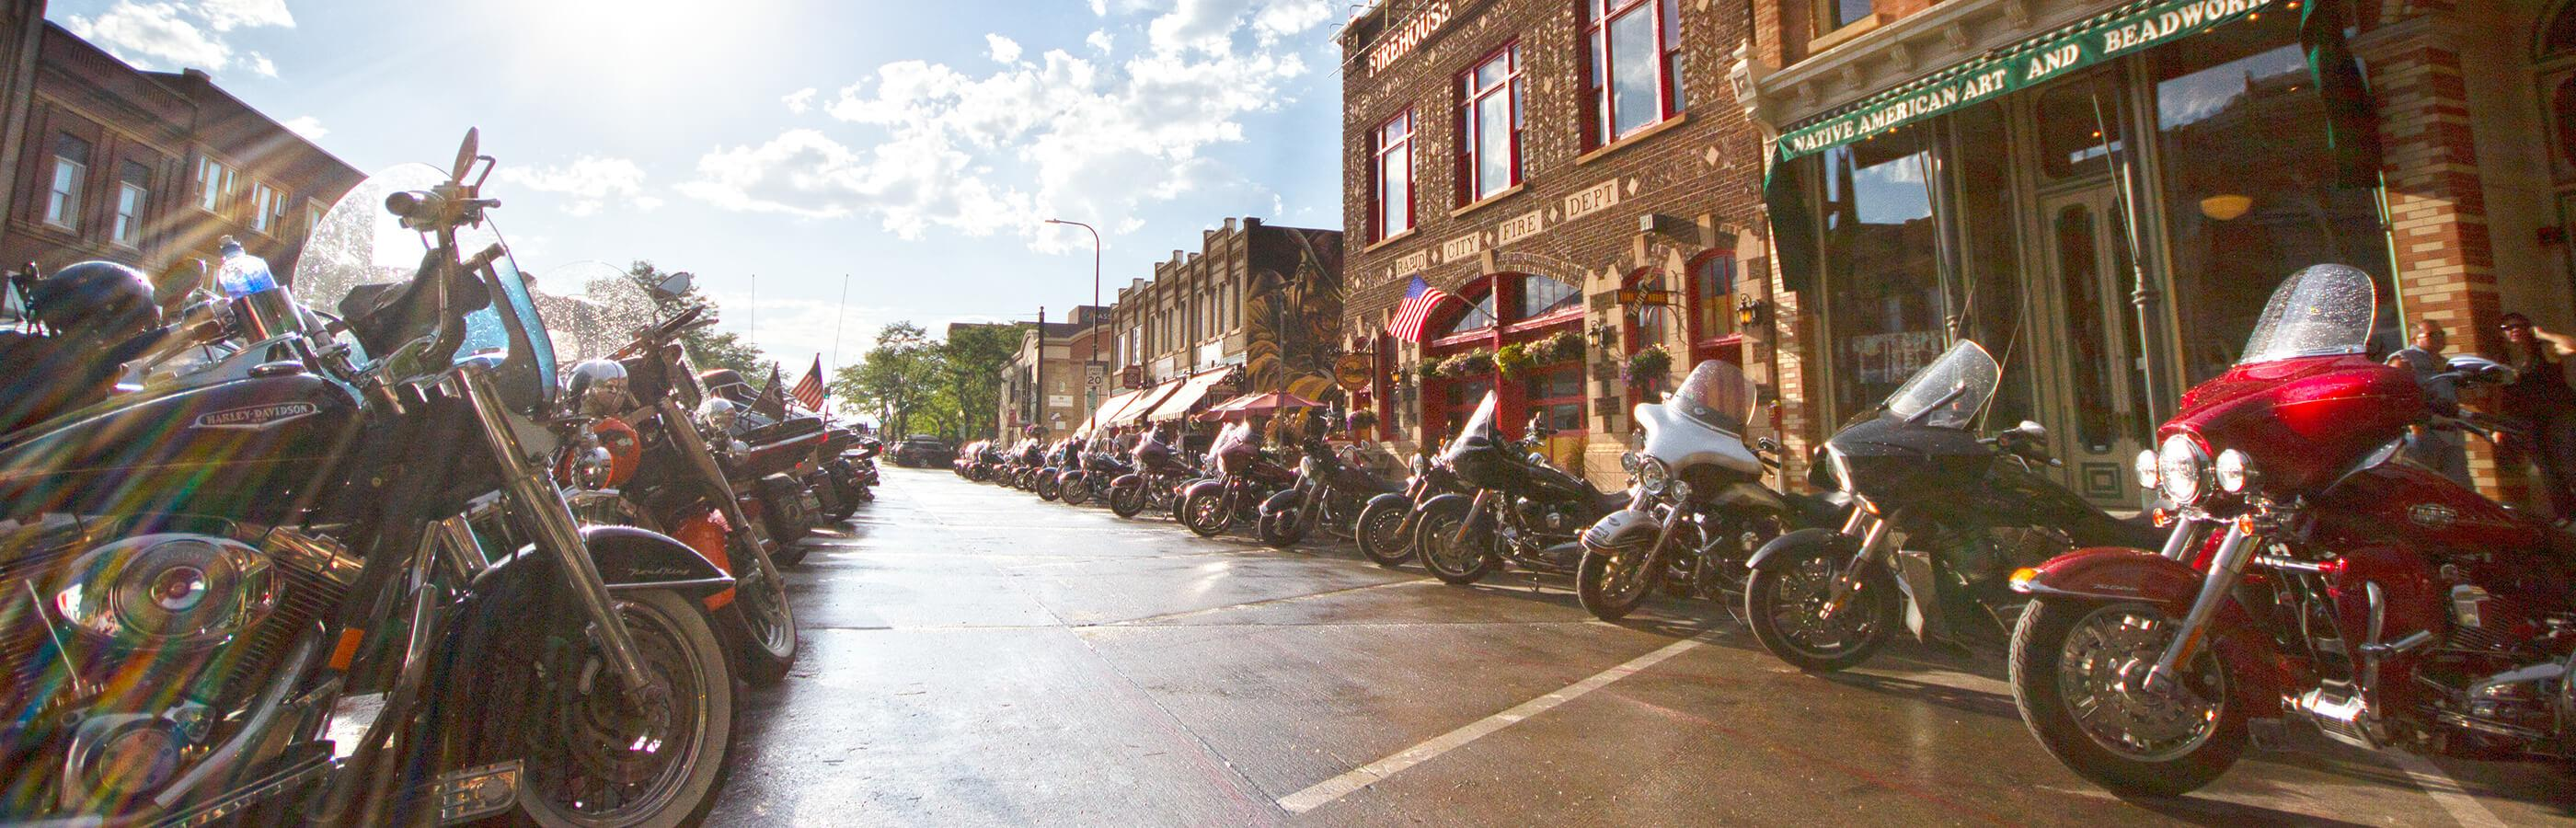 Motorcycles Parked In Downtown Rapid City